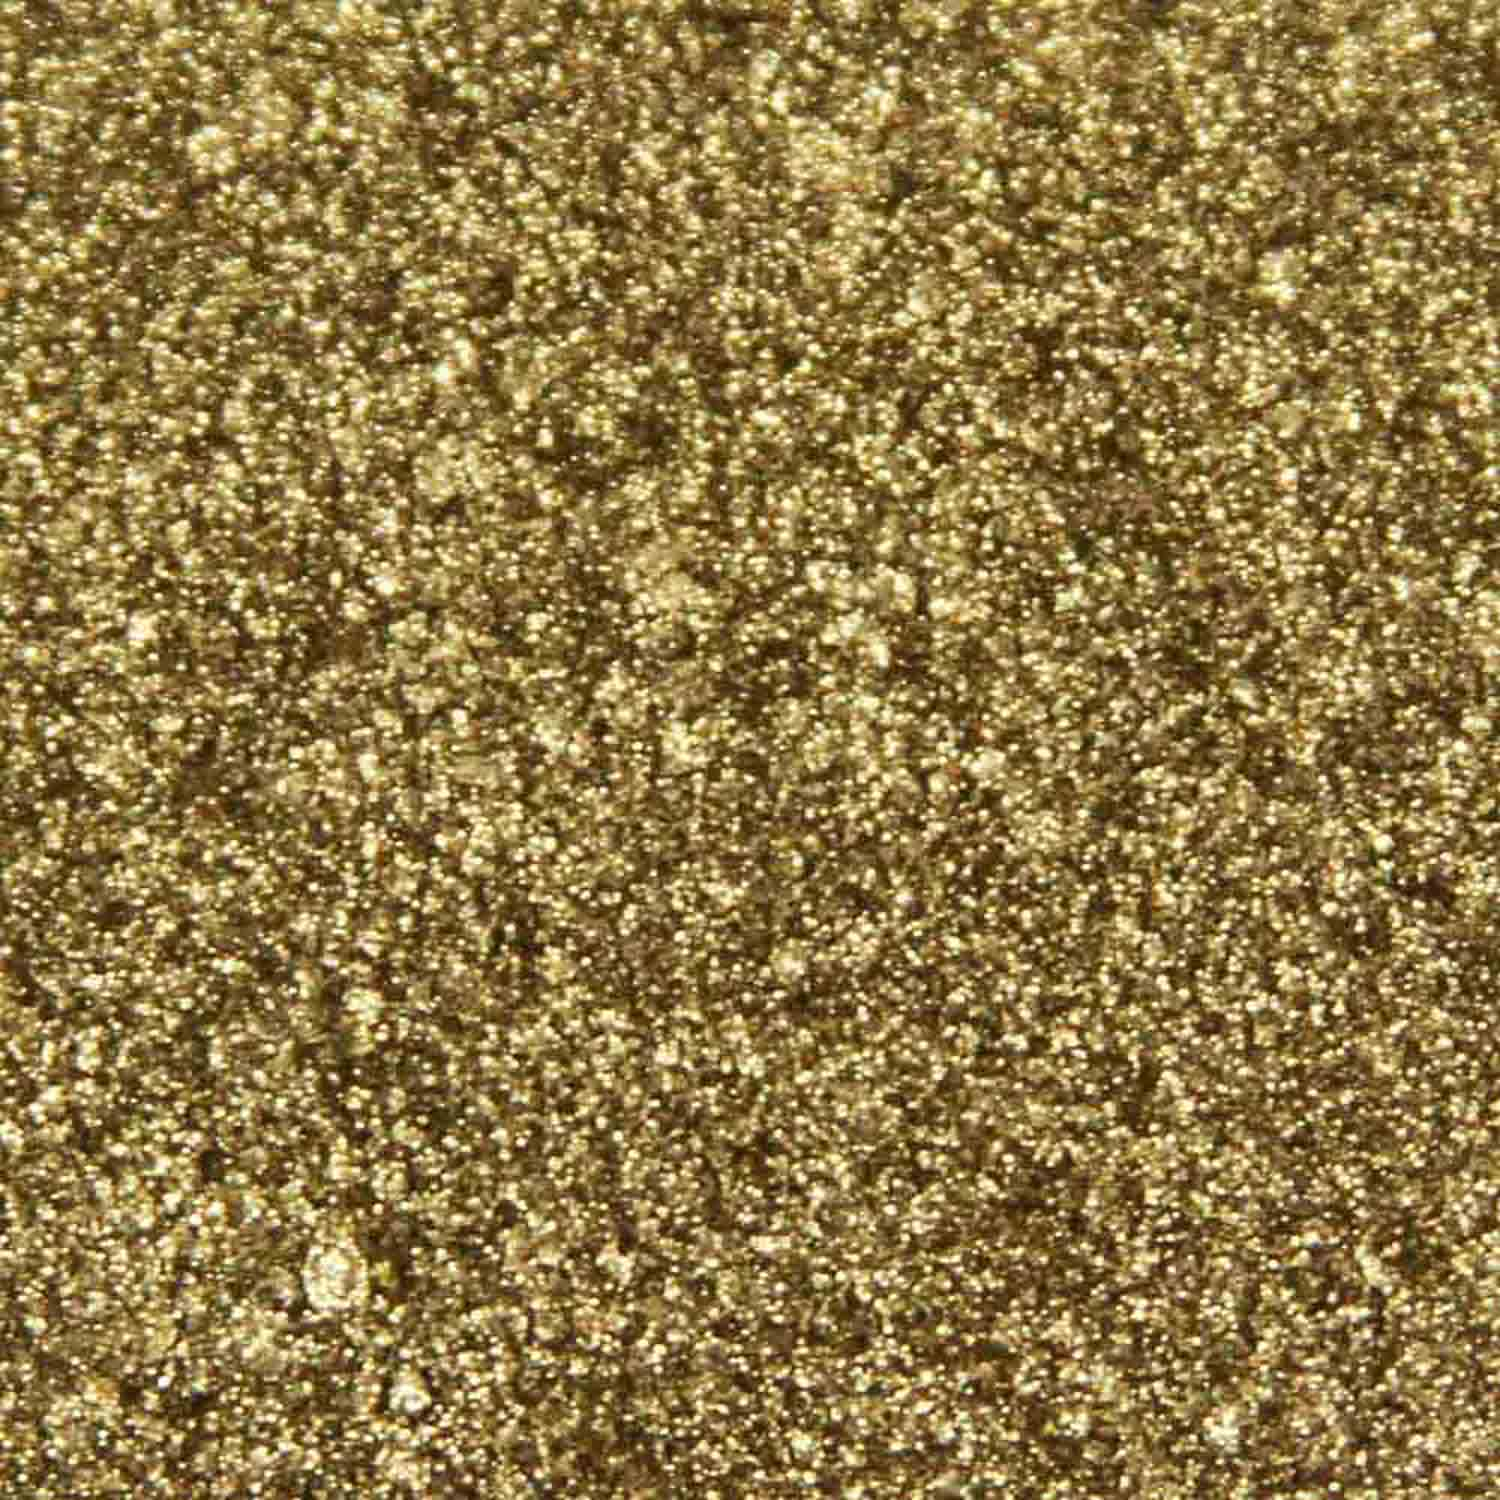 Imperial Gold Dust (Replaces Gold Highlighter 43-1402)